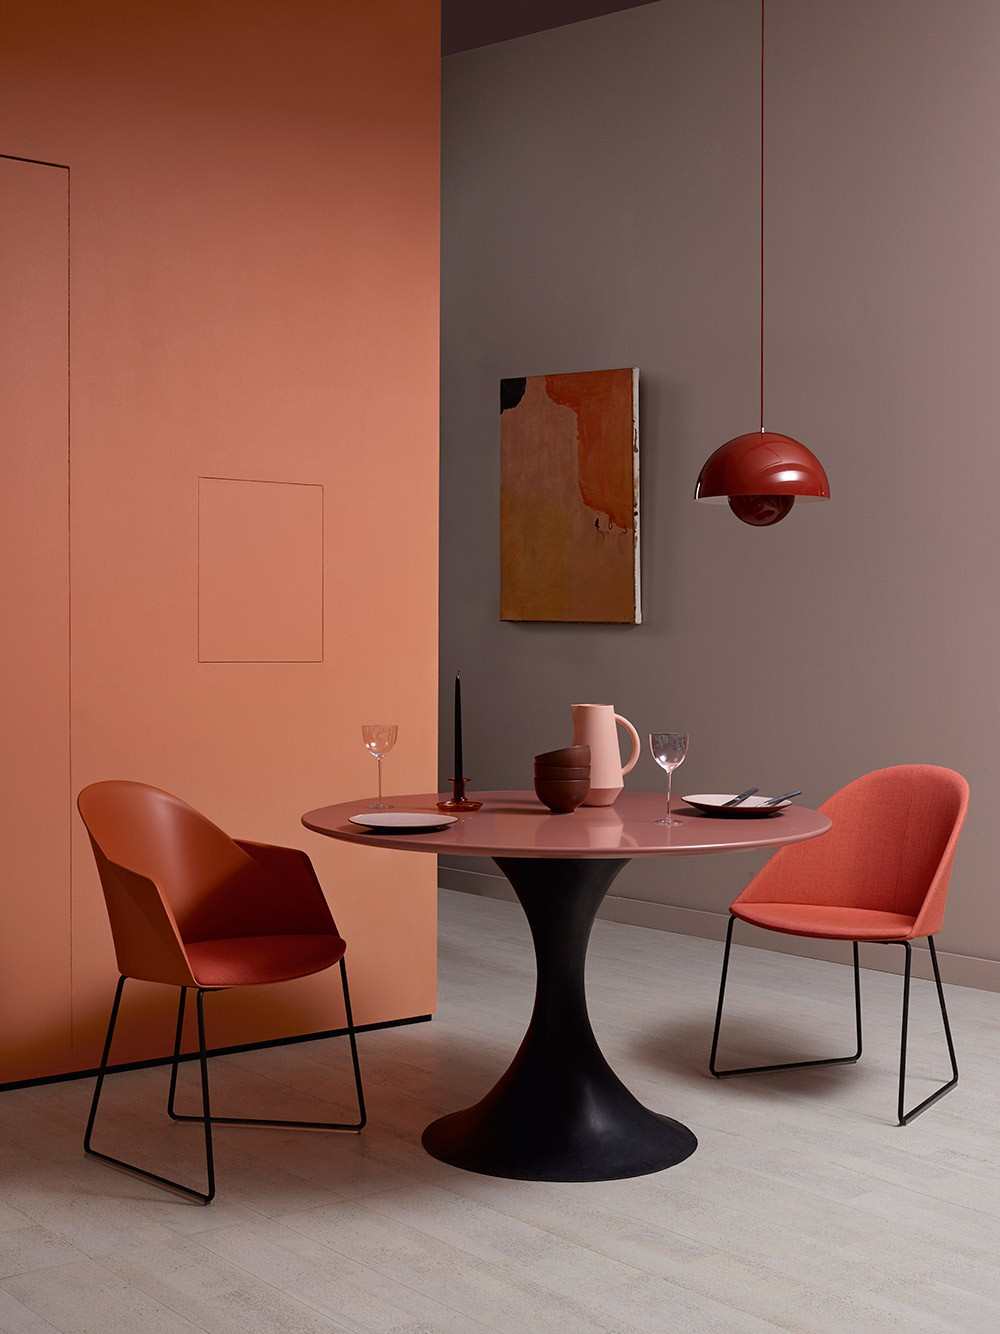 Orange dining table and chair